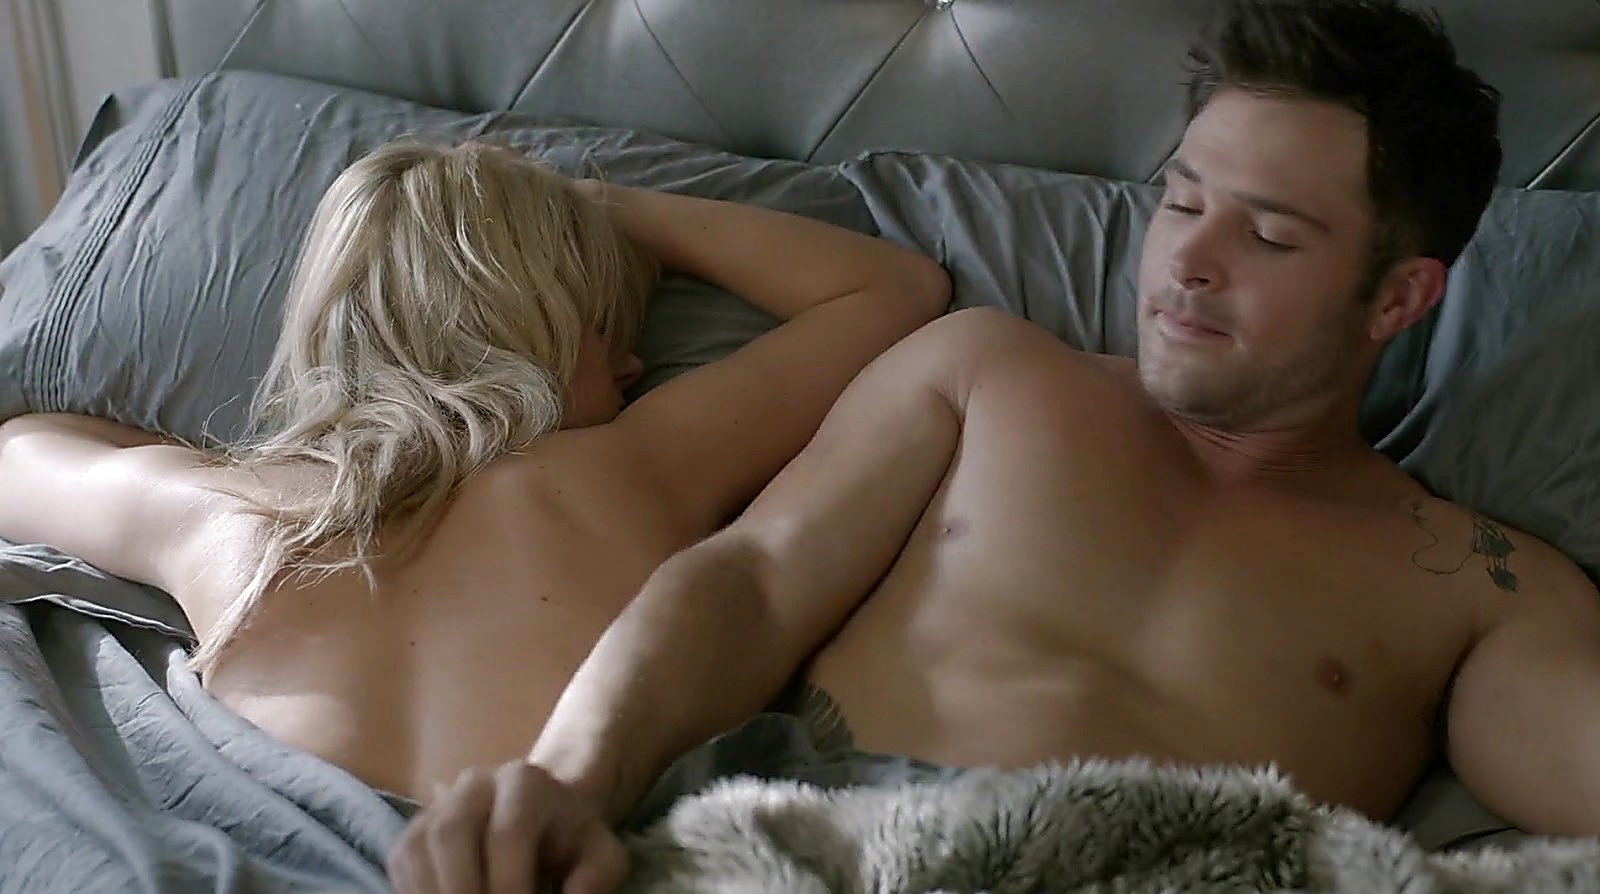 Cody Longo sexy shirtless scene June 1, 2019, 2pm